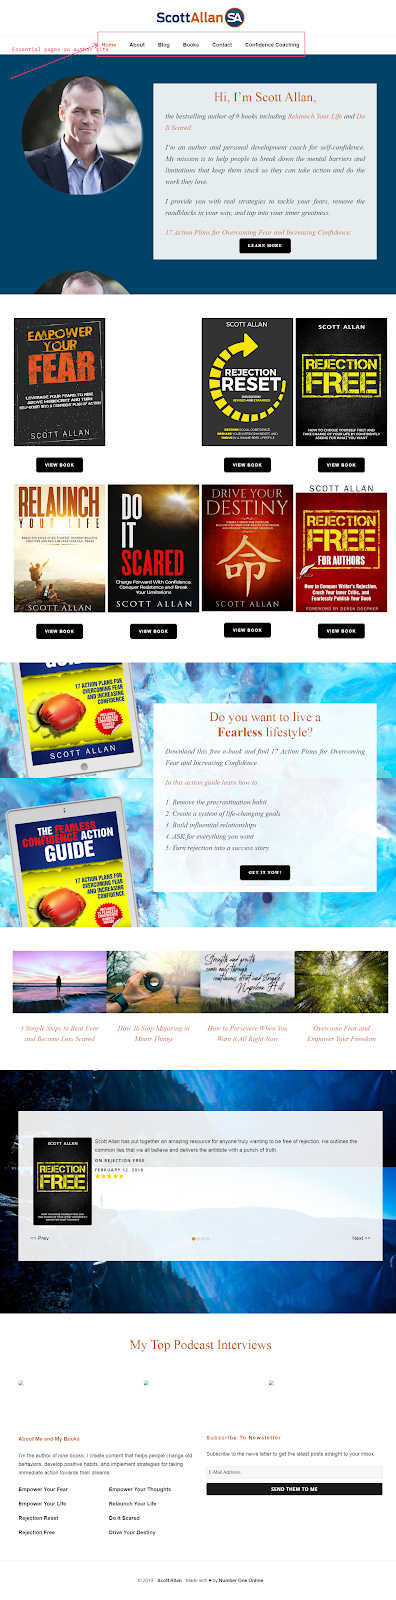 examples of an author website for marketing